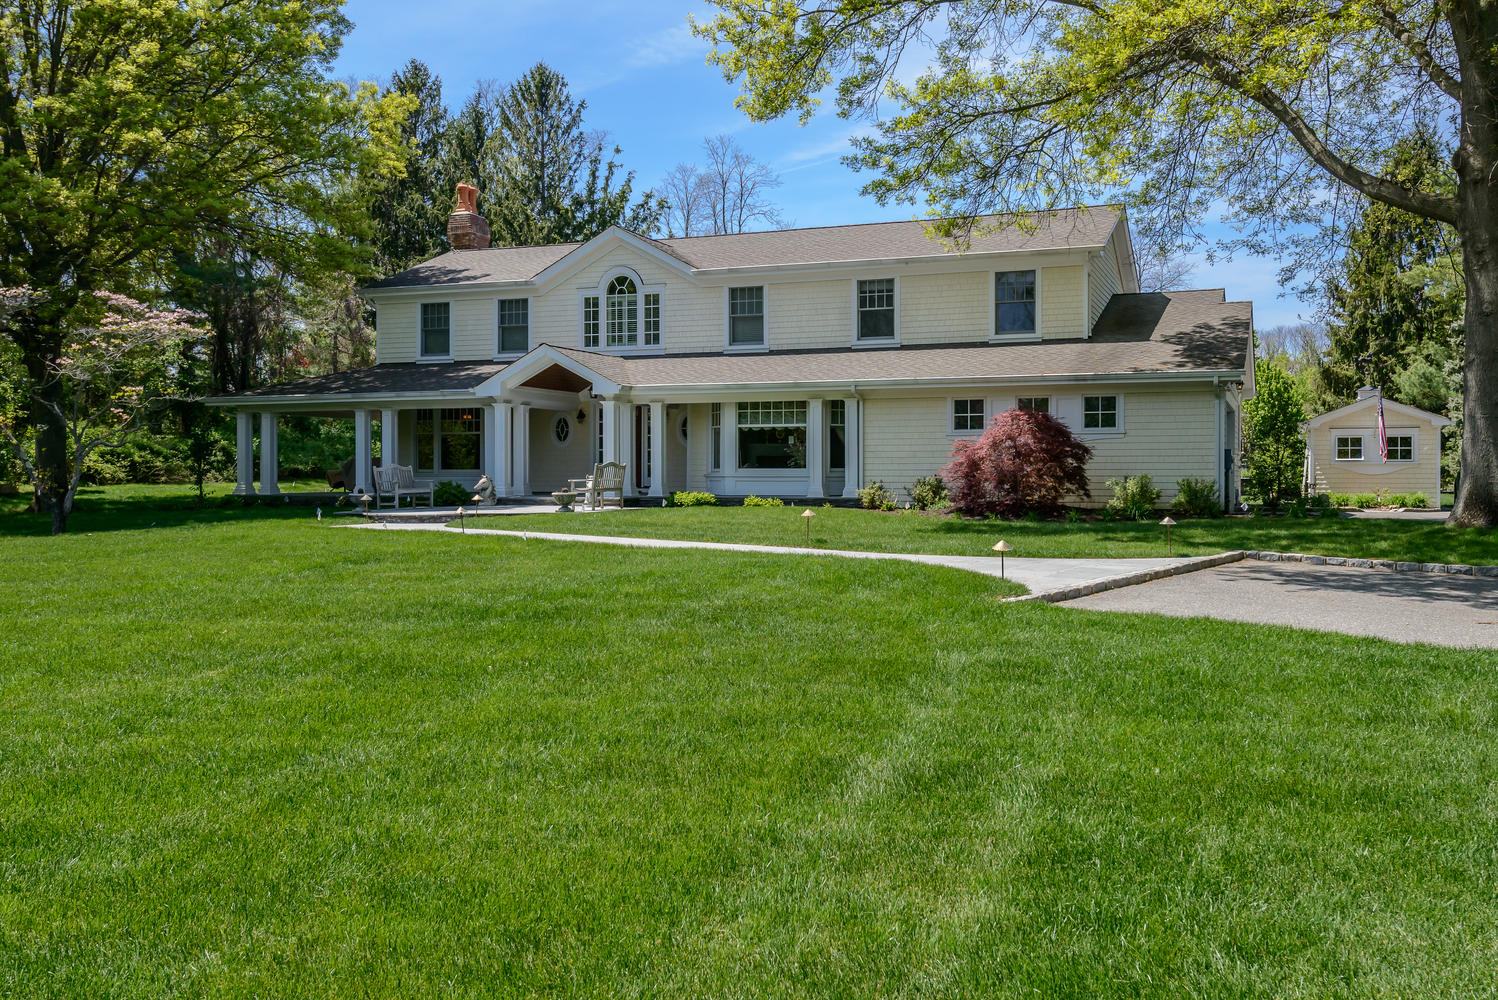 Single Family Home for Sale at Colonial 16 Grouse Ln Lloyd Harbor, New York, 11743 United States